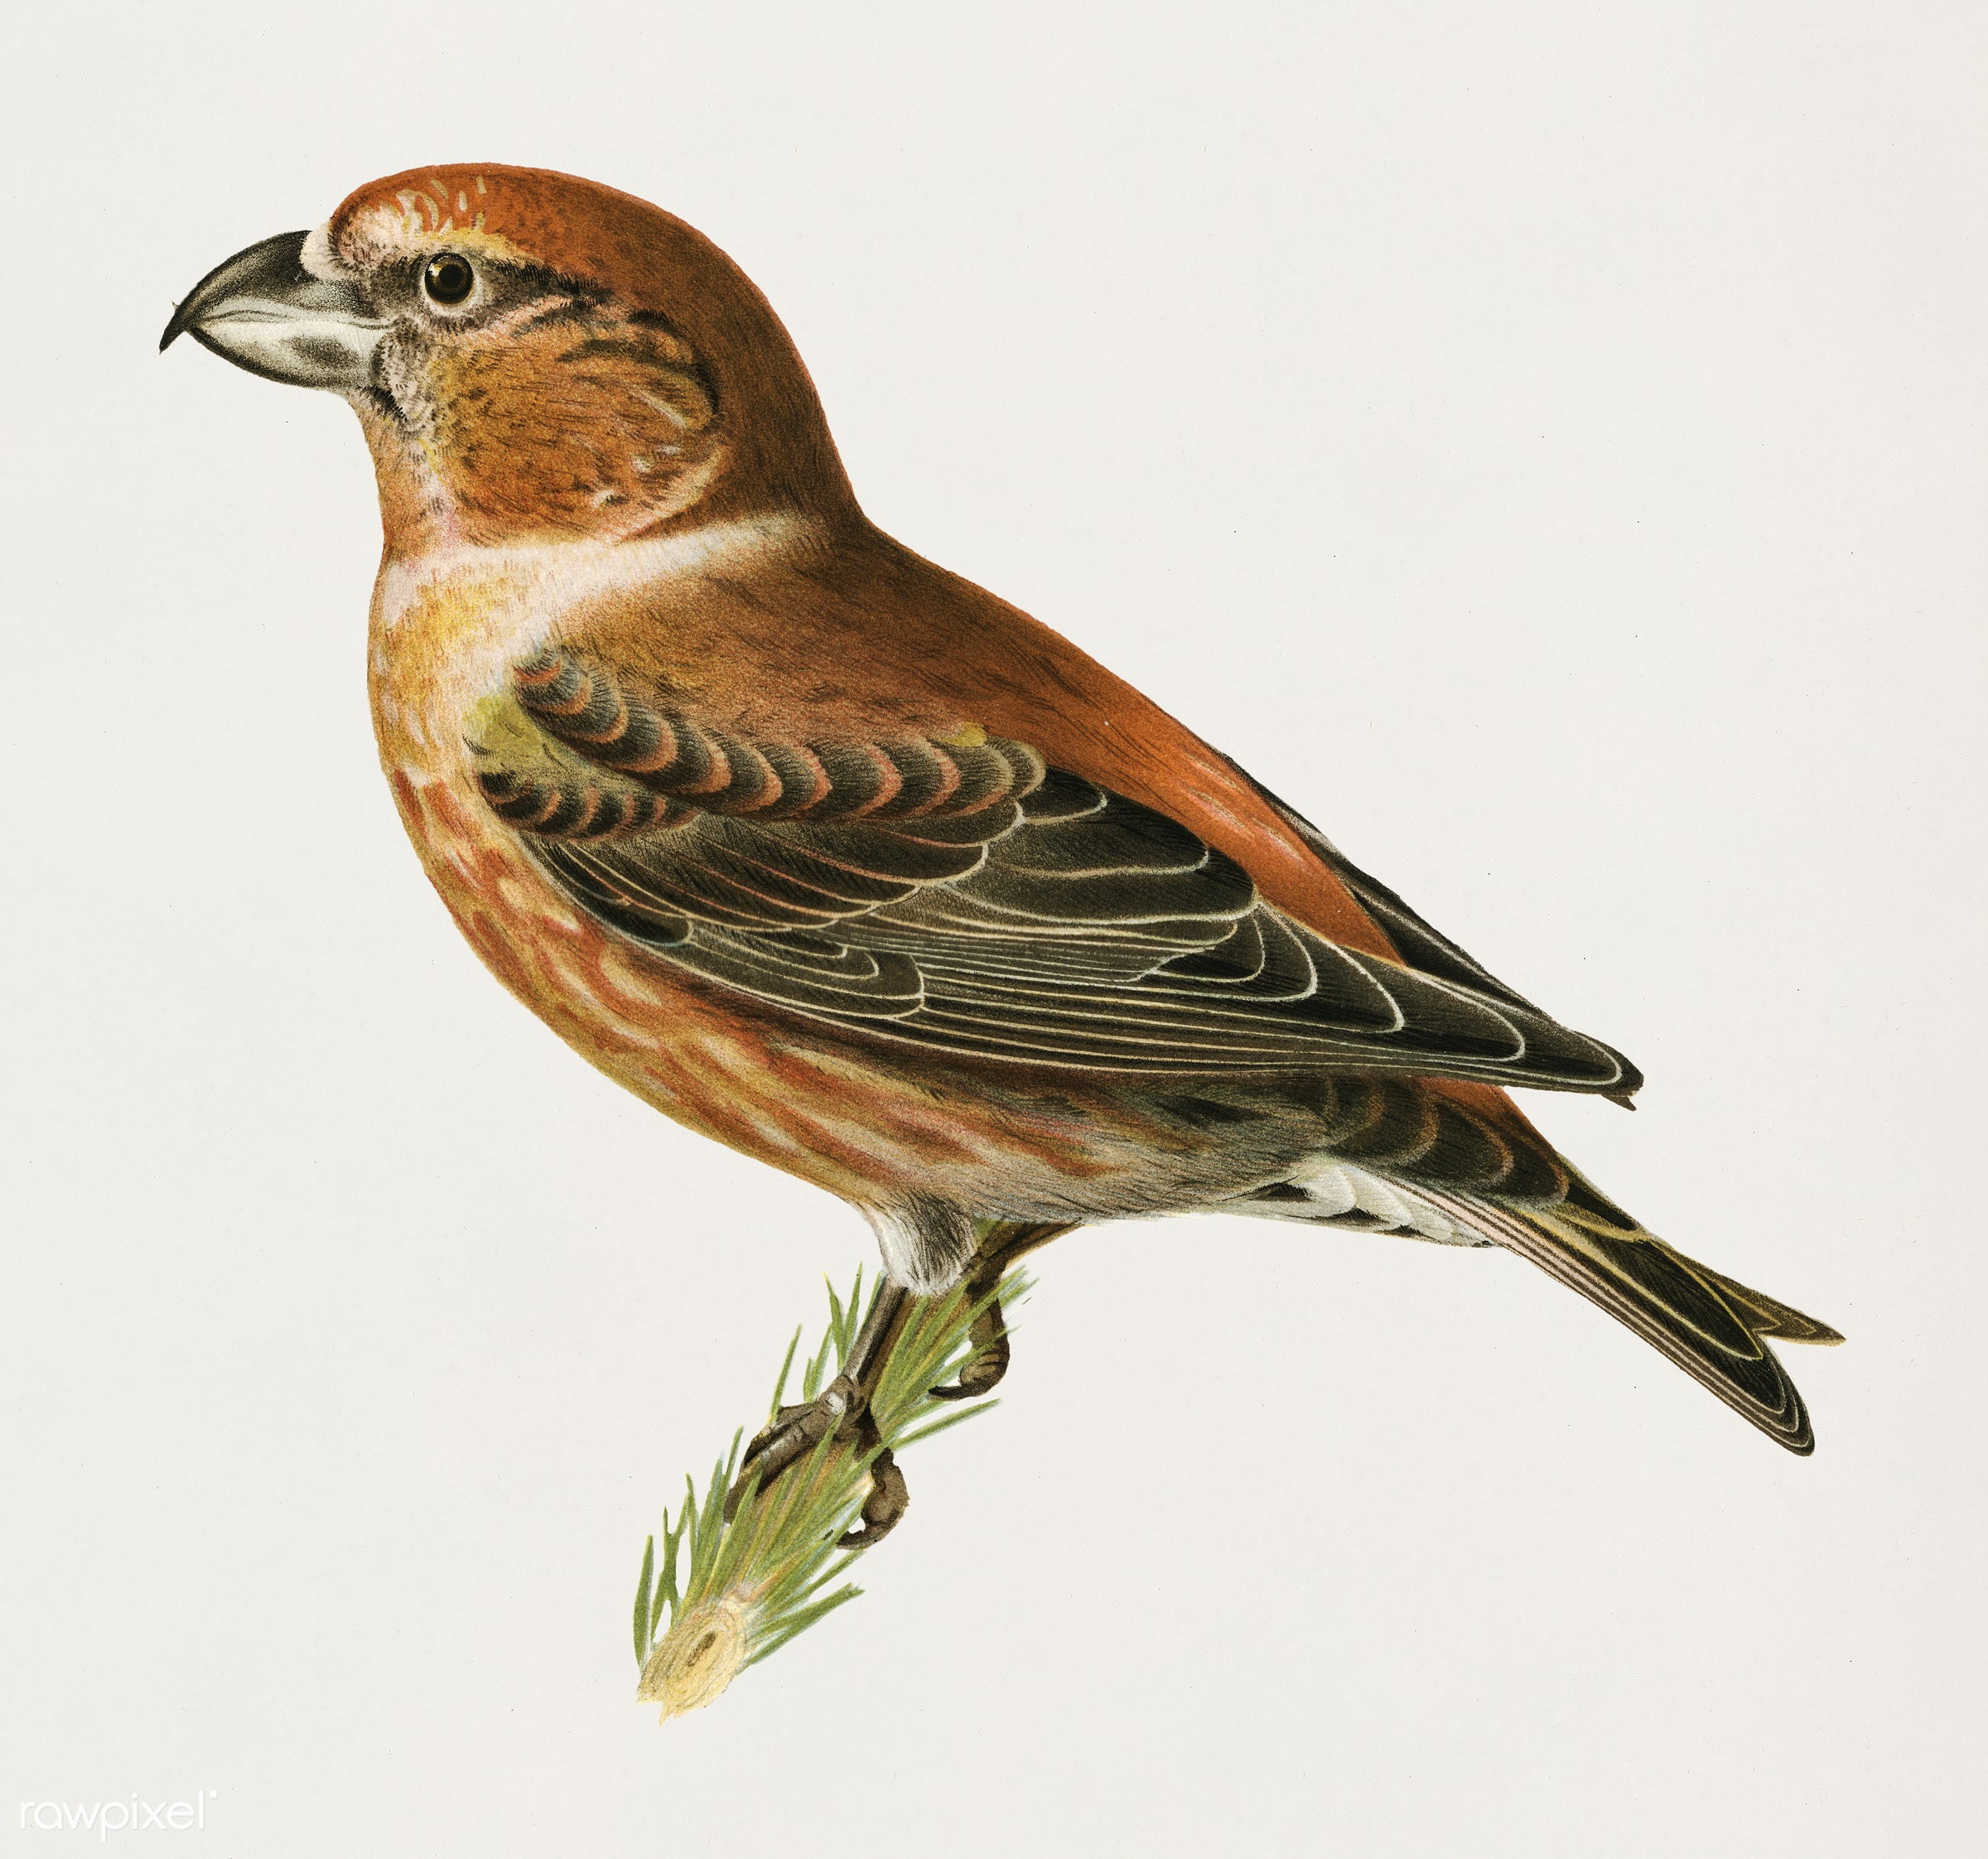 Parrot Crossbill ♂ (Loxia pytyopsittacus) illustrated by the von Wright brothers. Digitally enhanced from our own 1929 folio...